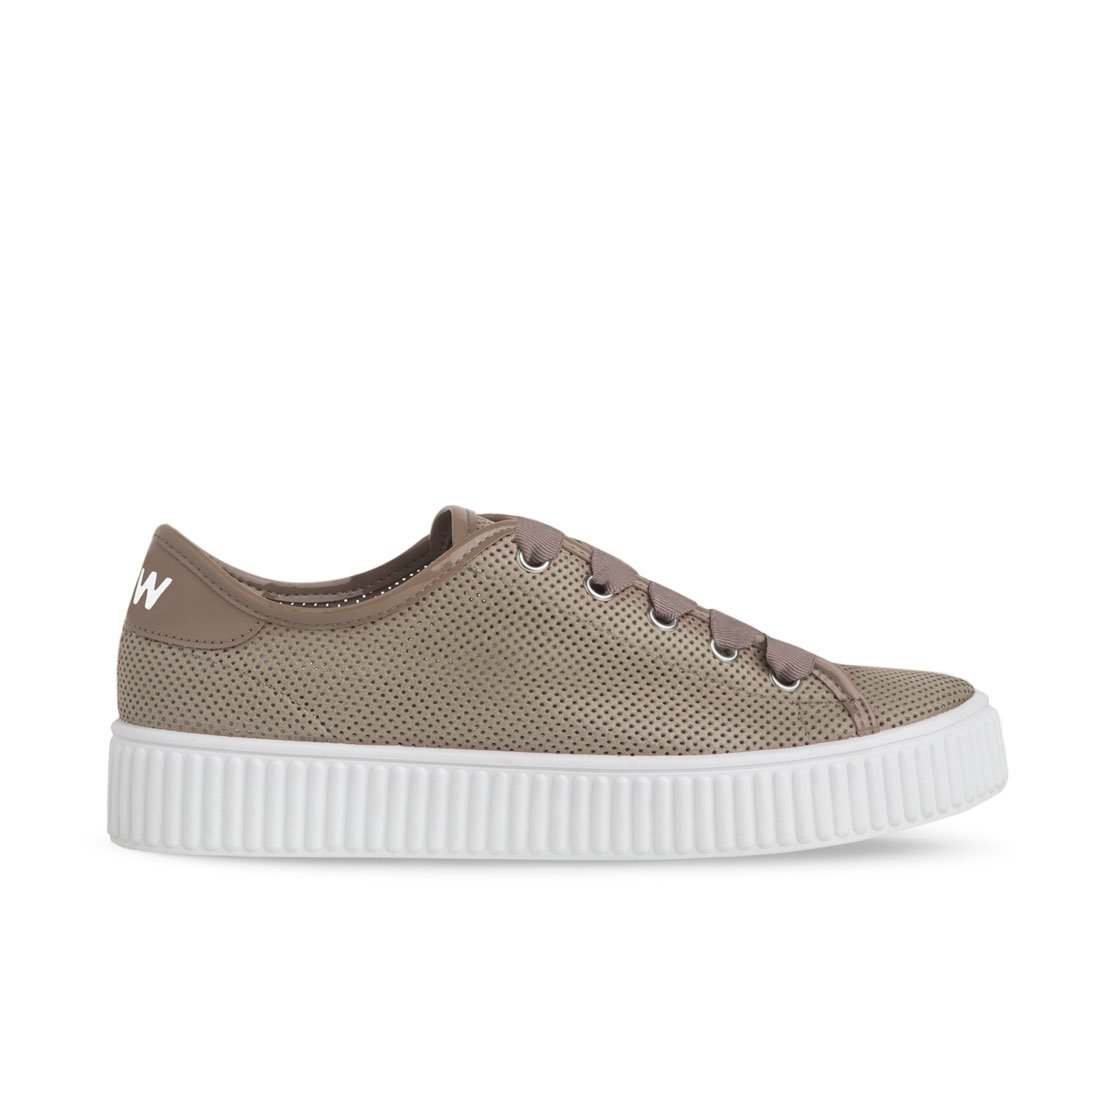 Break & & & Walk Damen Hv220906 Turnschuhe 802294